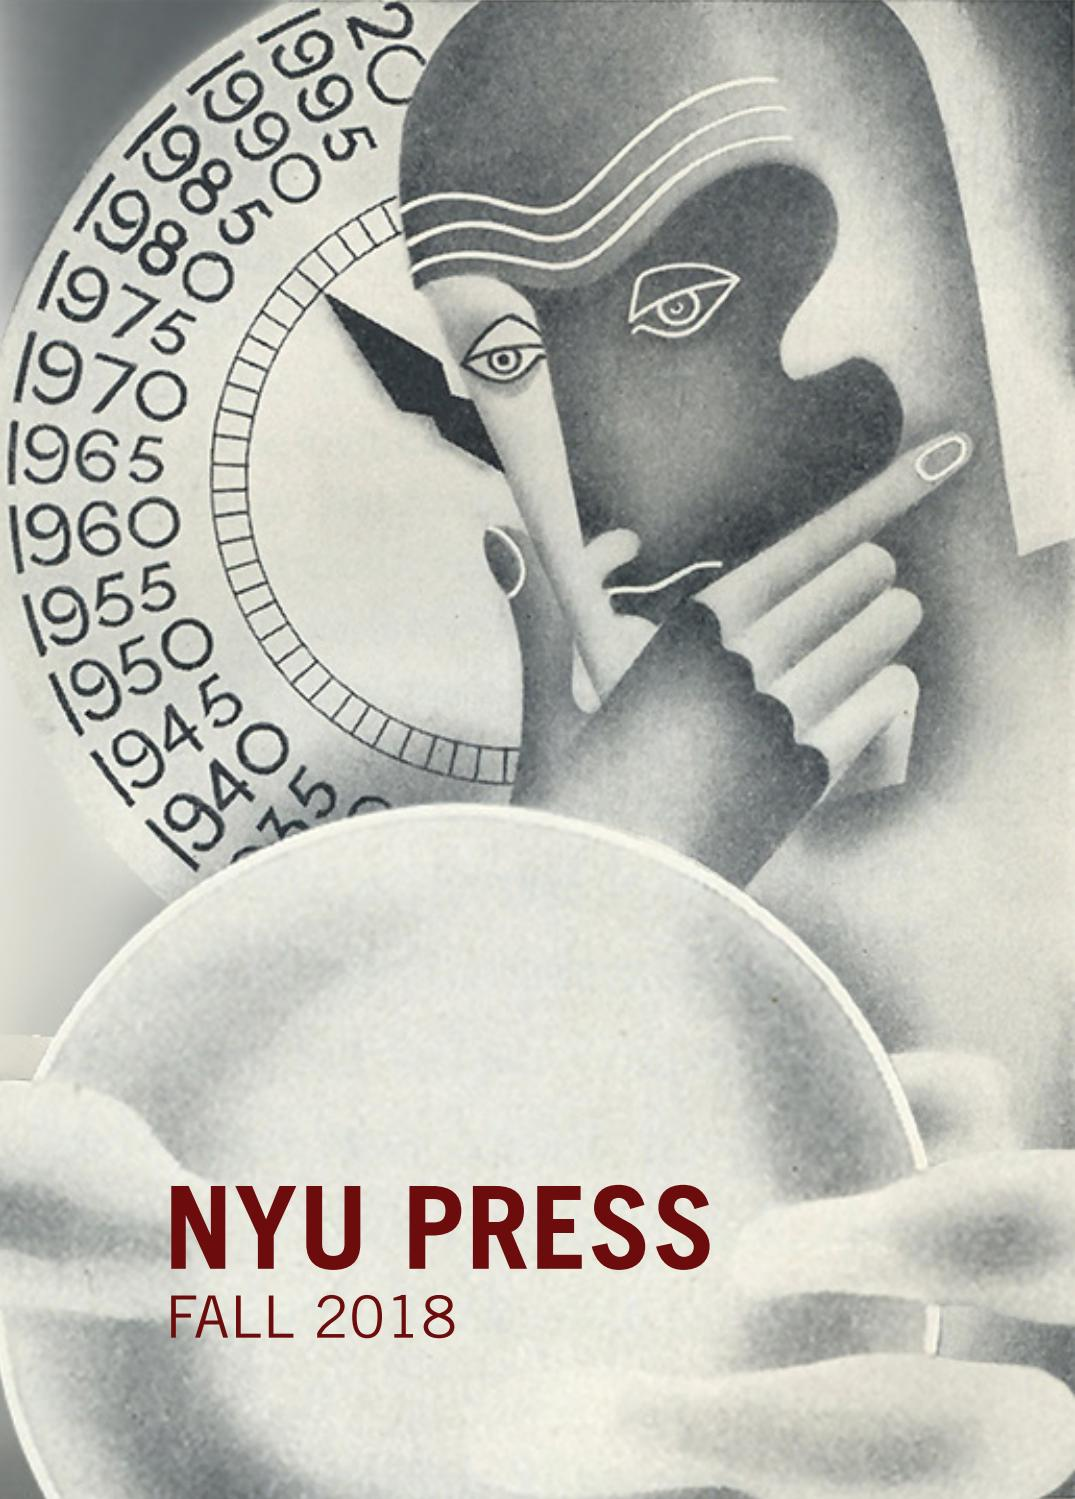 Fall 2018 Nyu Press Catalog By Nyu Press Issuu